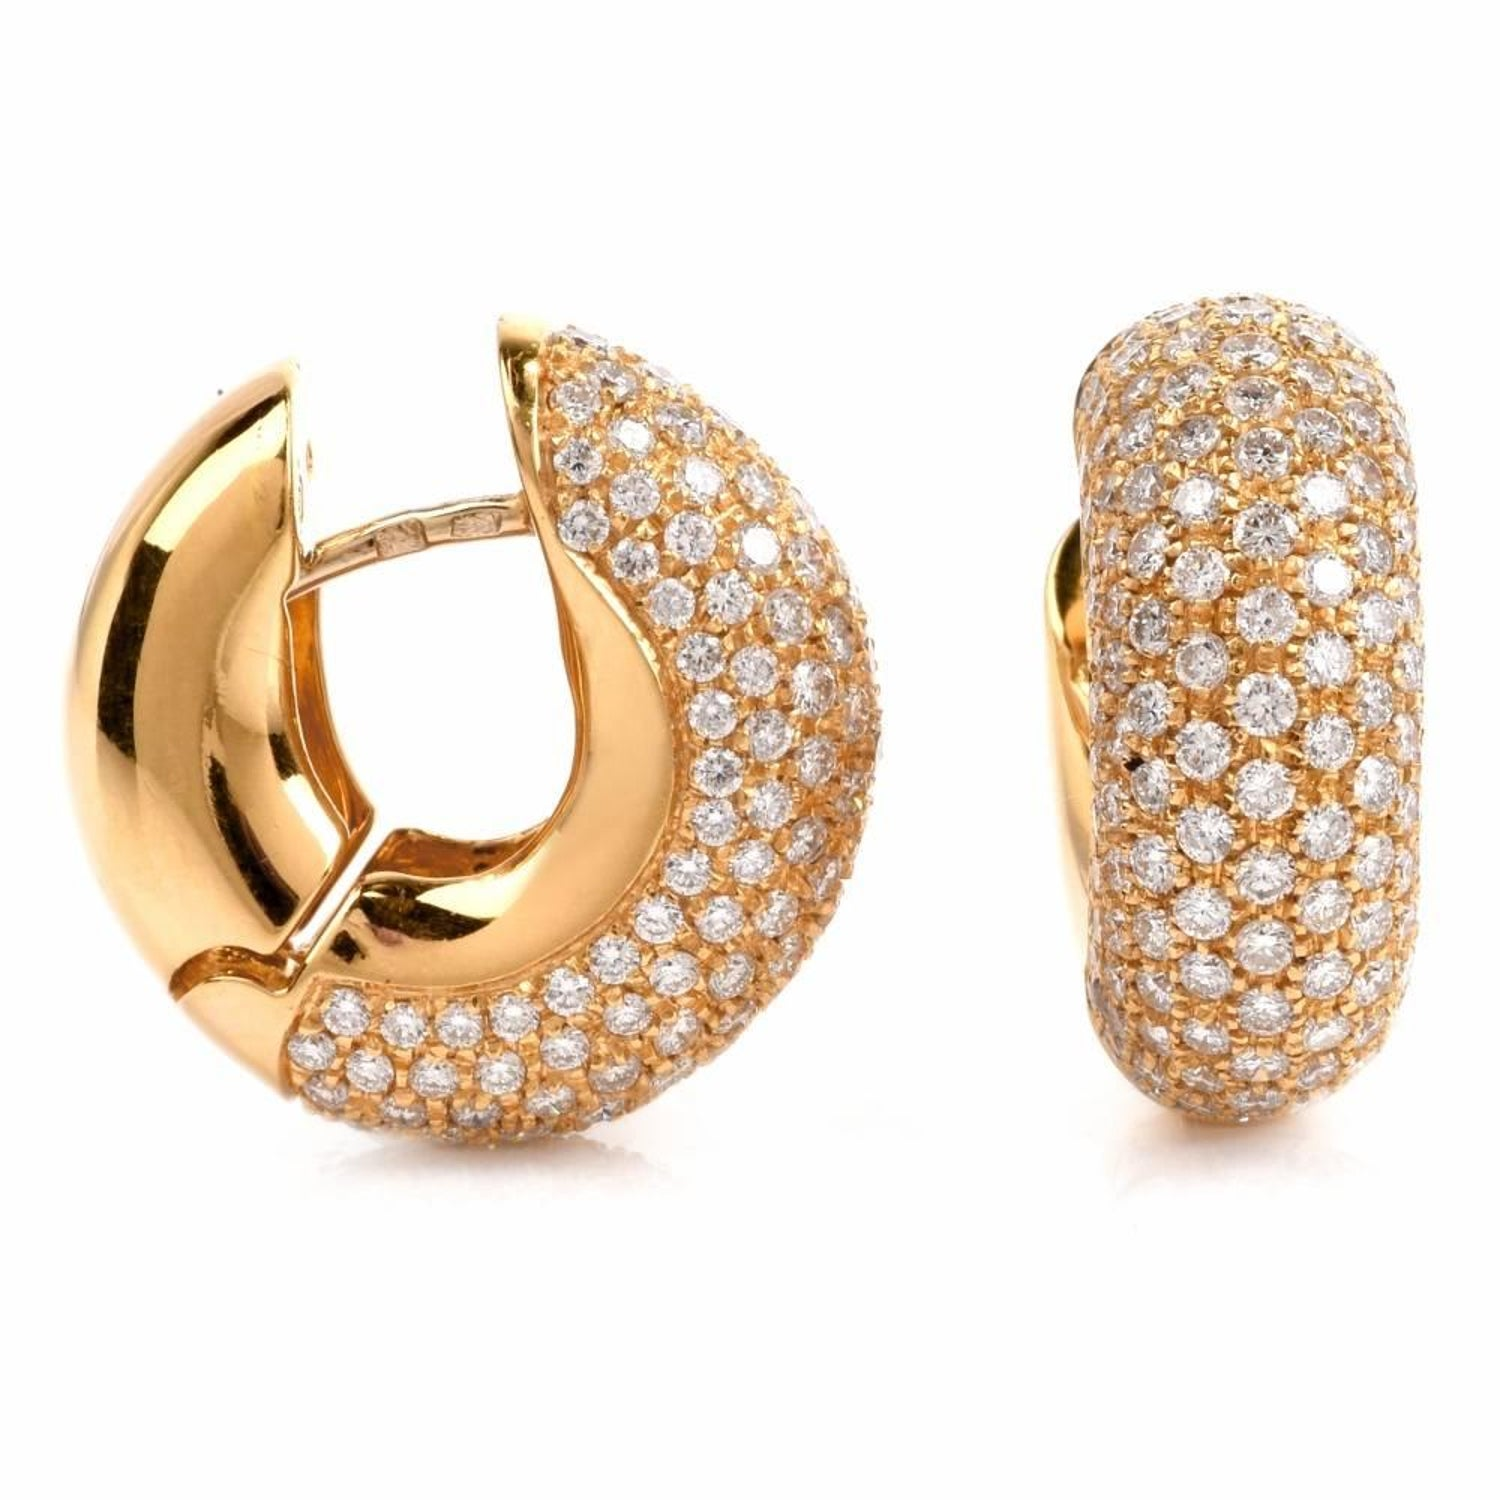 his k pin collection italian primavera has carefully roberto in coin gold placed dipped earrings